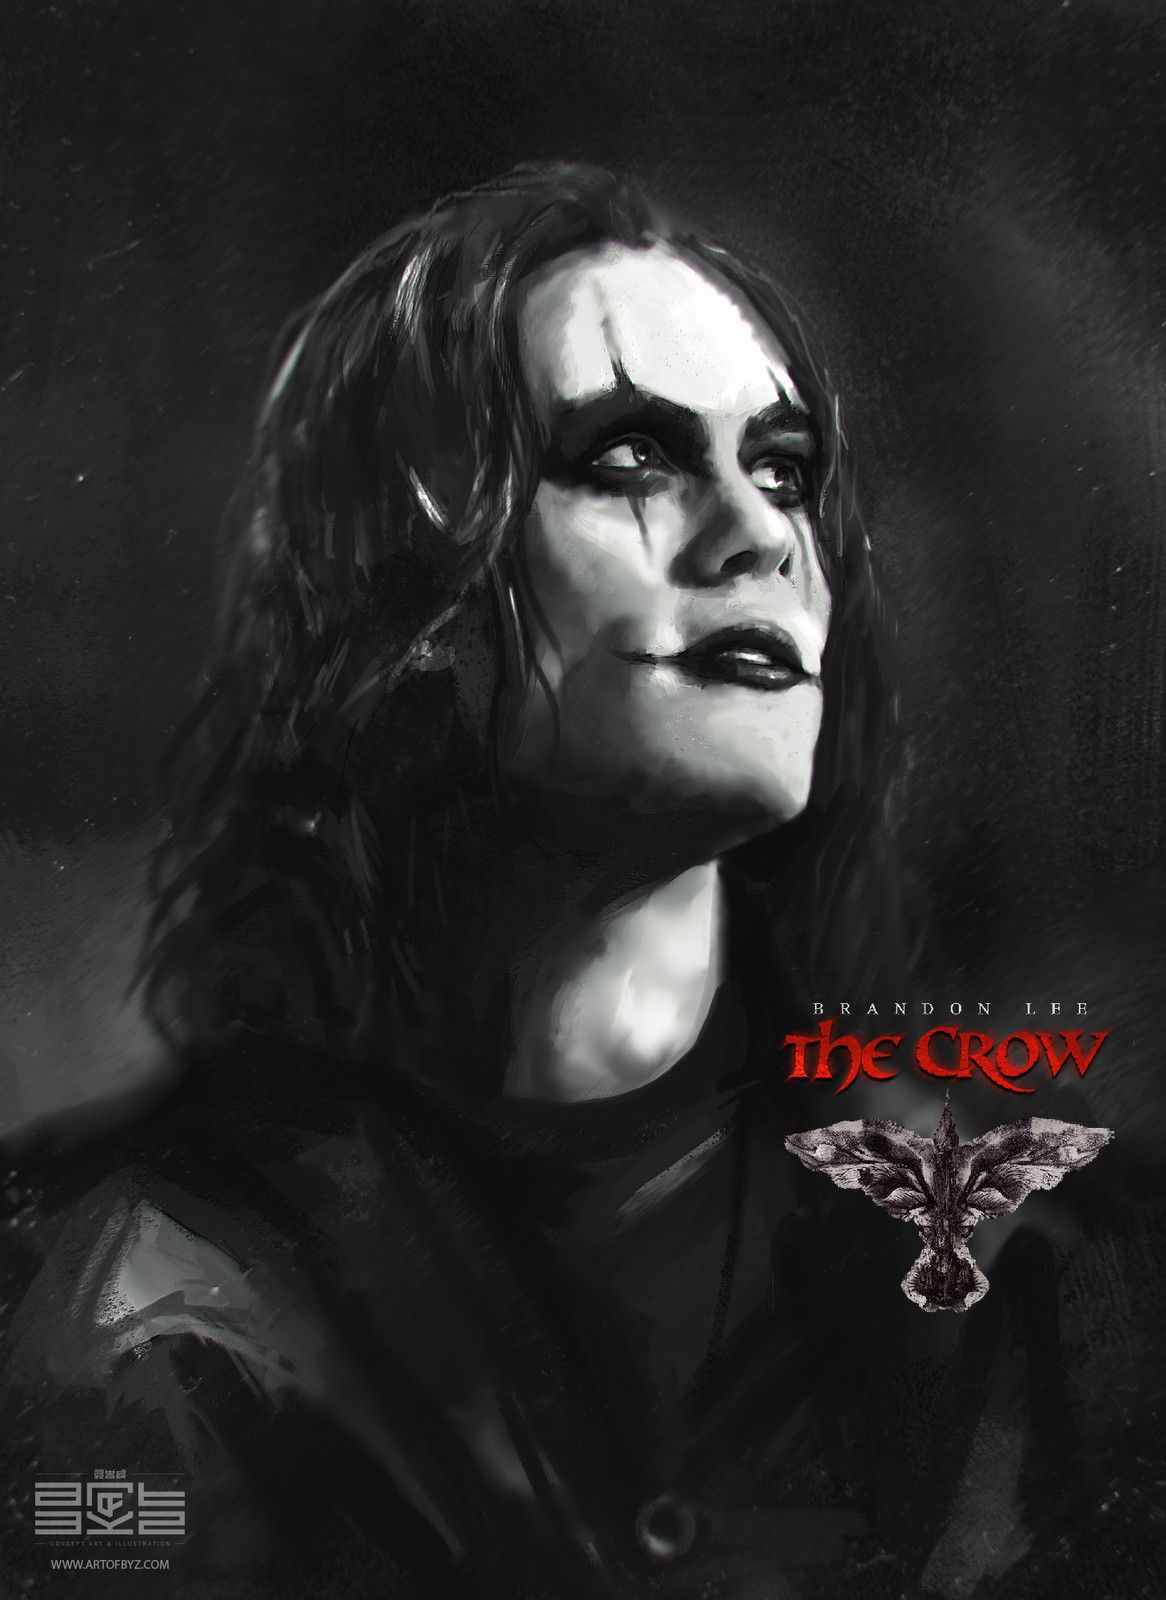 The Crow Brandon Lee Vintage Movie Giant Poster A0 A1 A2 A3 A4 Sizes